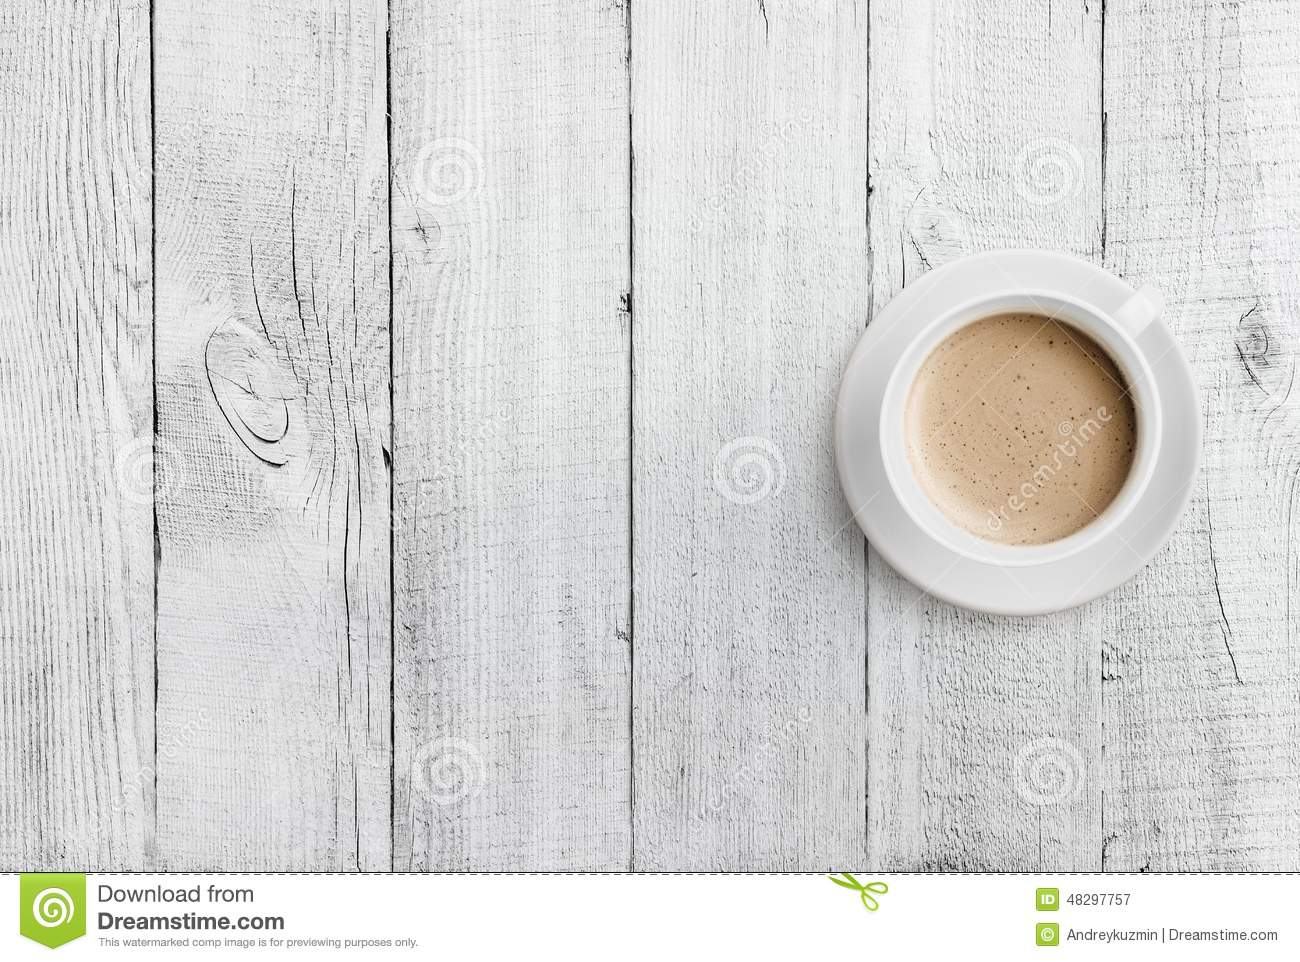 Very Impressive portraiture of Coffee Cup Top View On White Wood Table Background Stock Photo Image  with #85A823 color and 1300x962 pixels